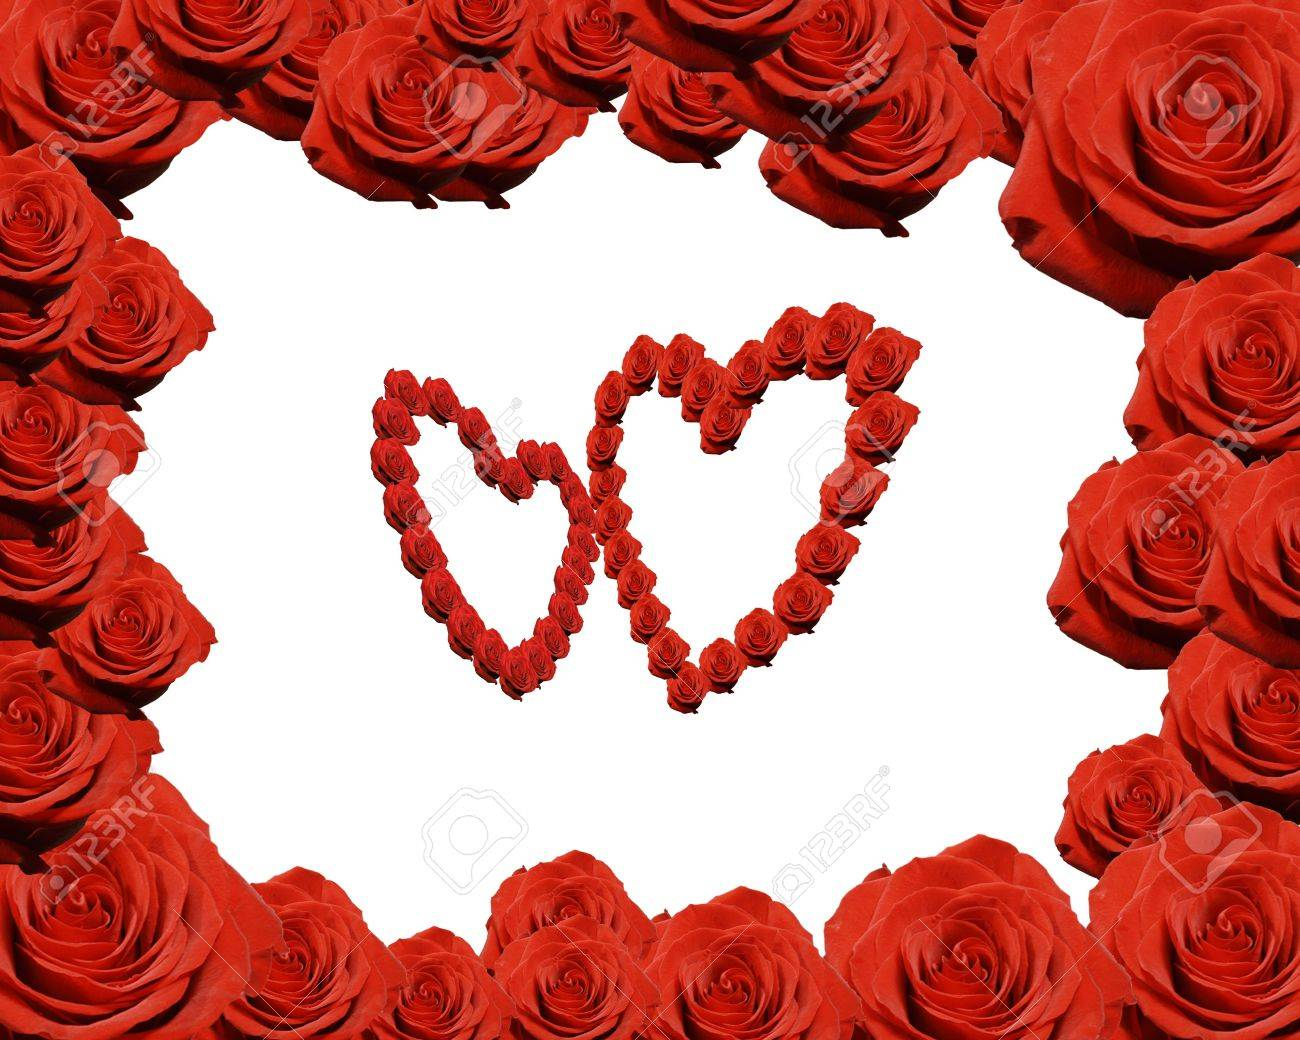 Frame Made From Red Roses With Two Rose Hearts Stock Photo, Picture ...